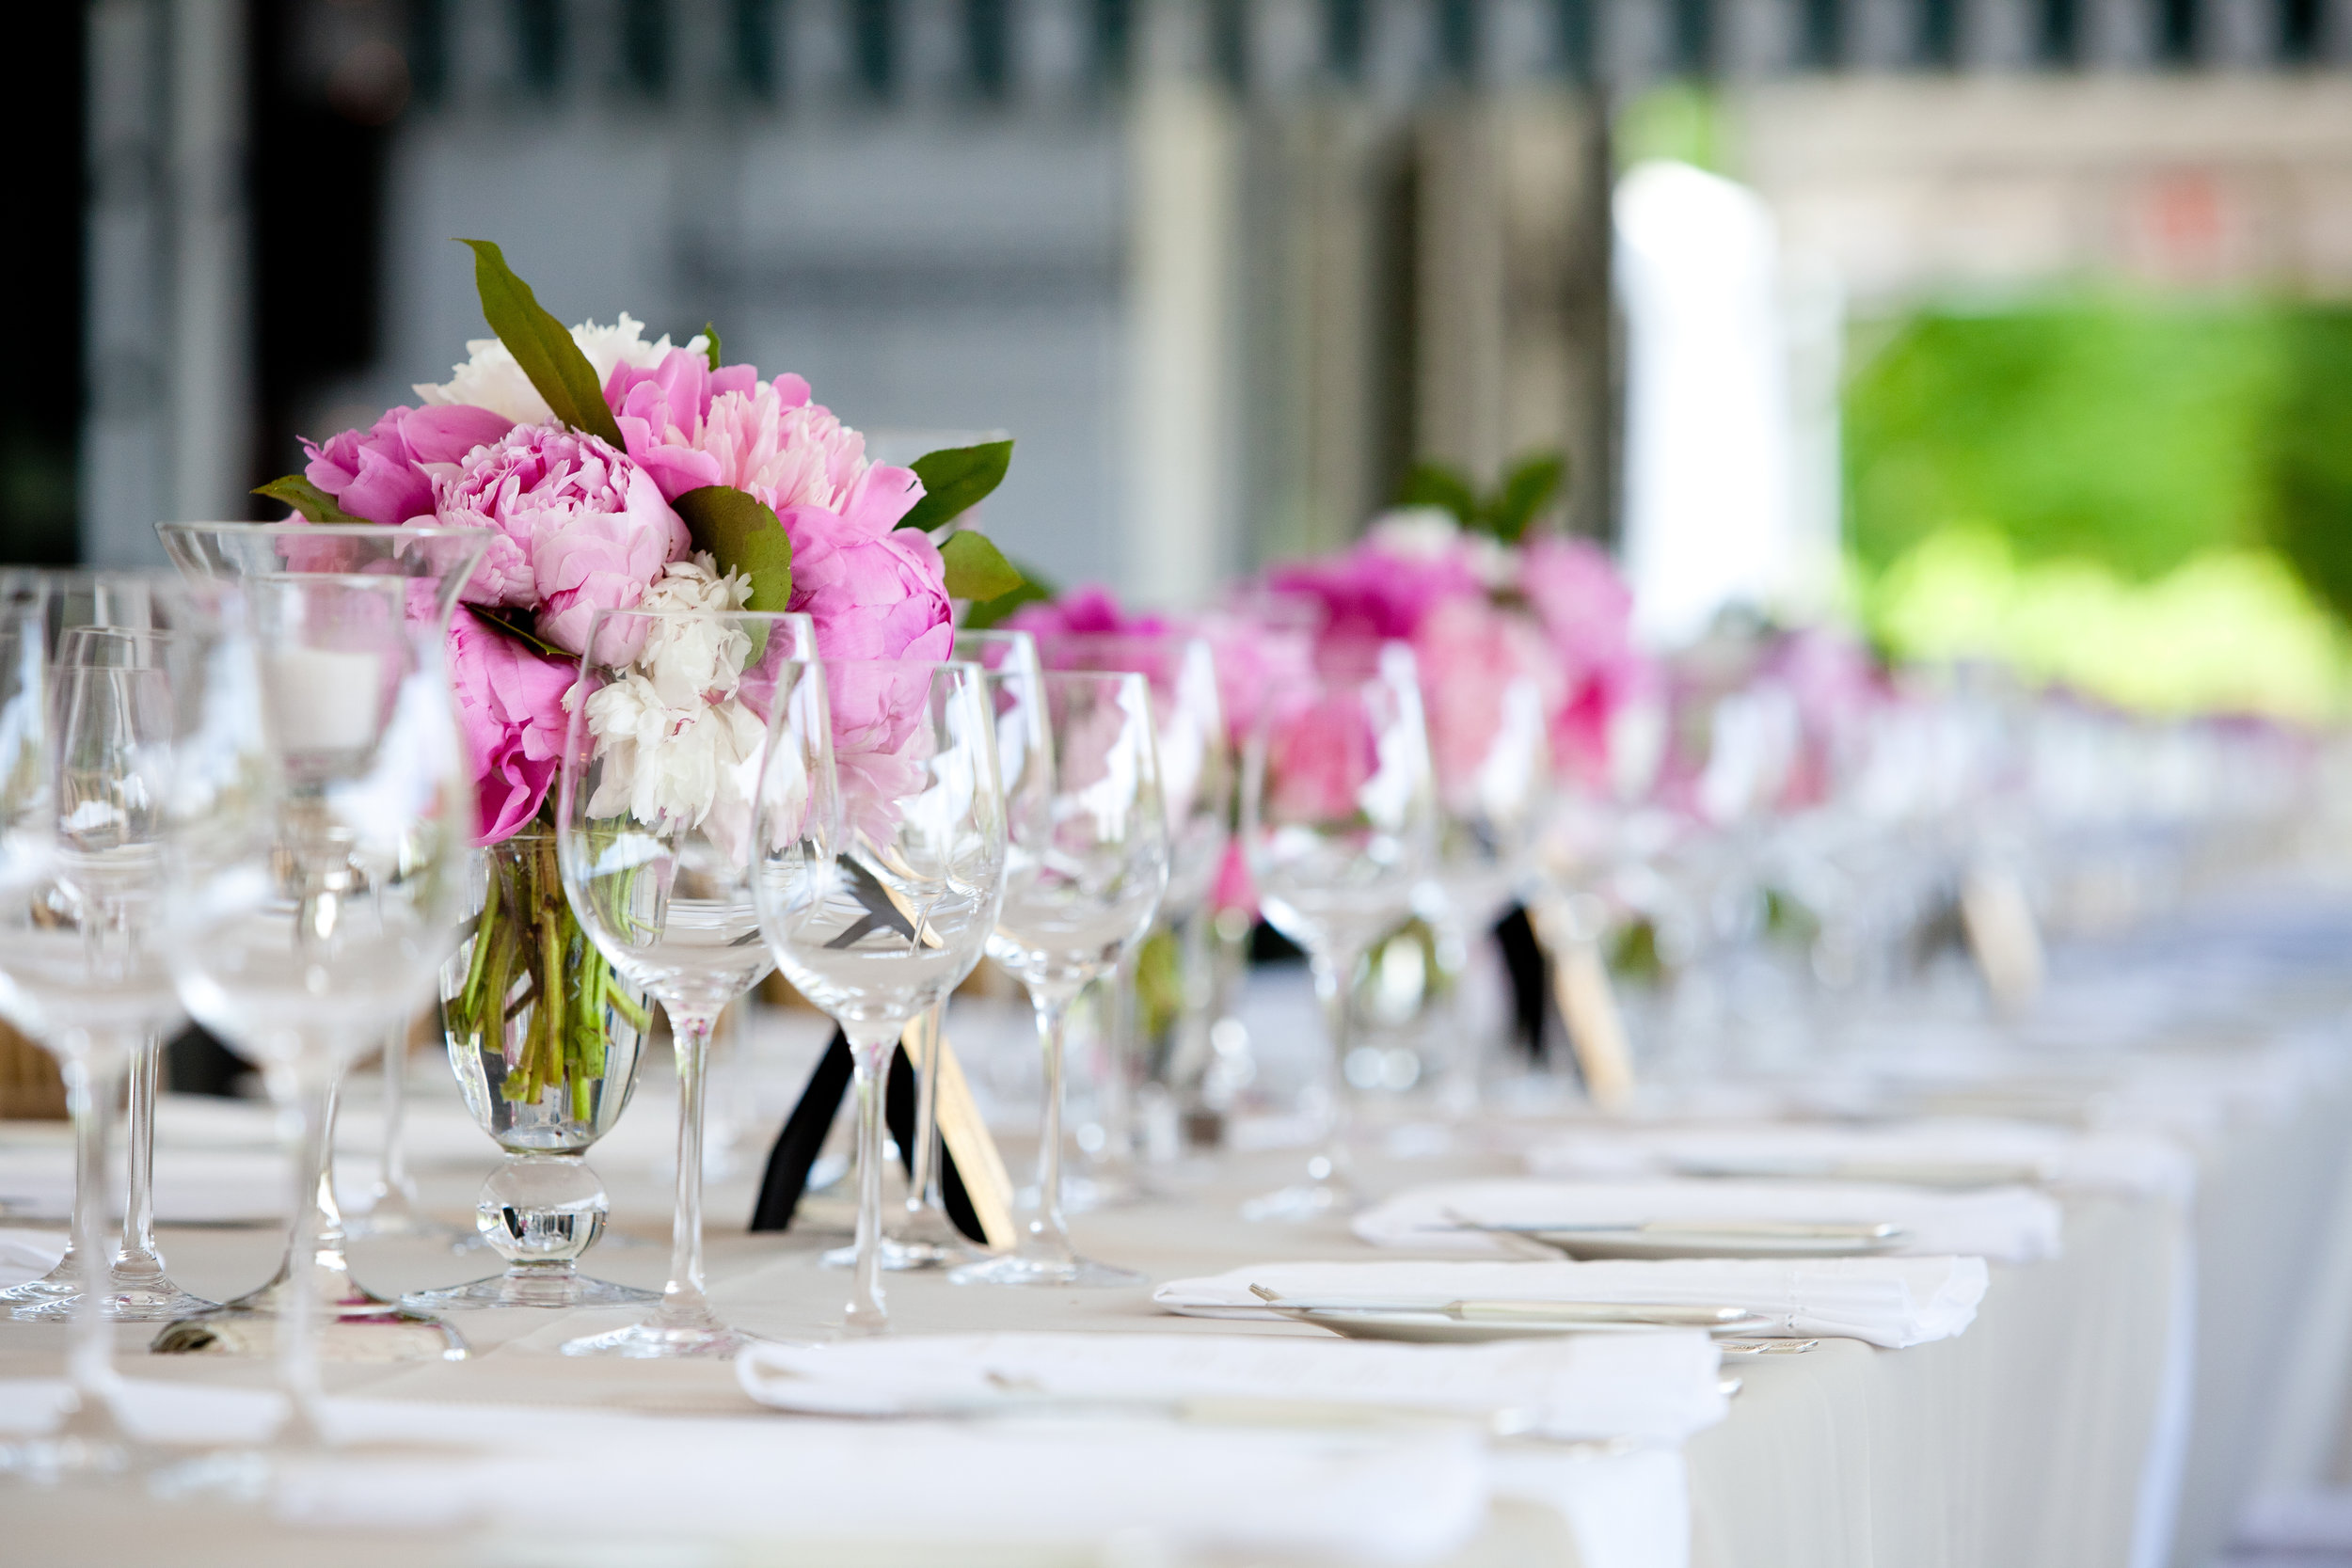 Event Catering - There is no occasion that we can't accommodate.